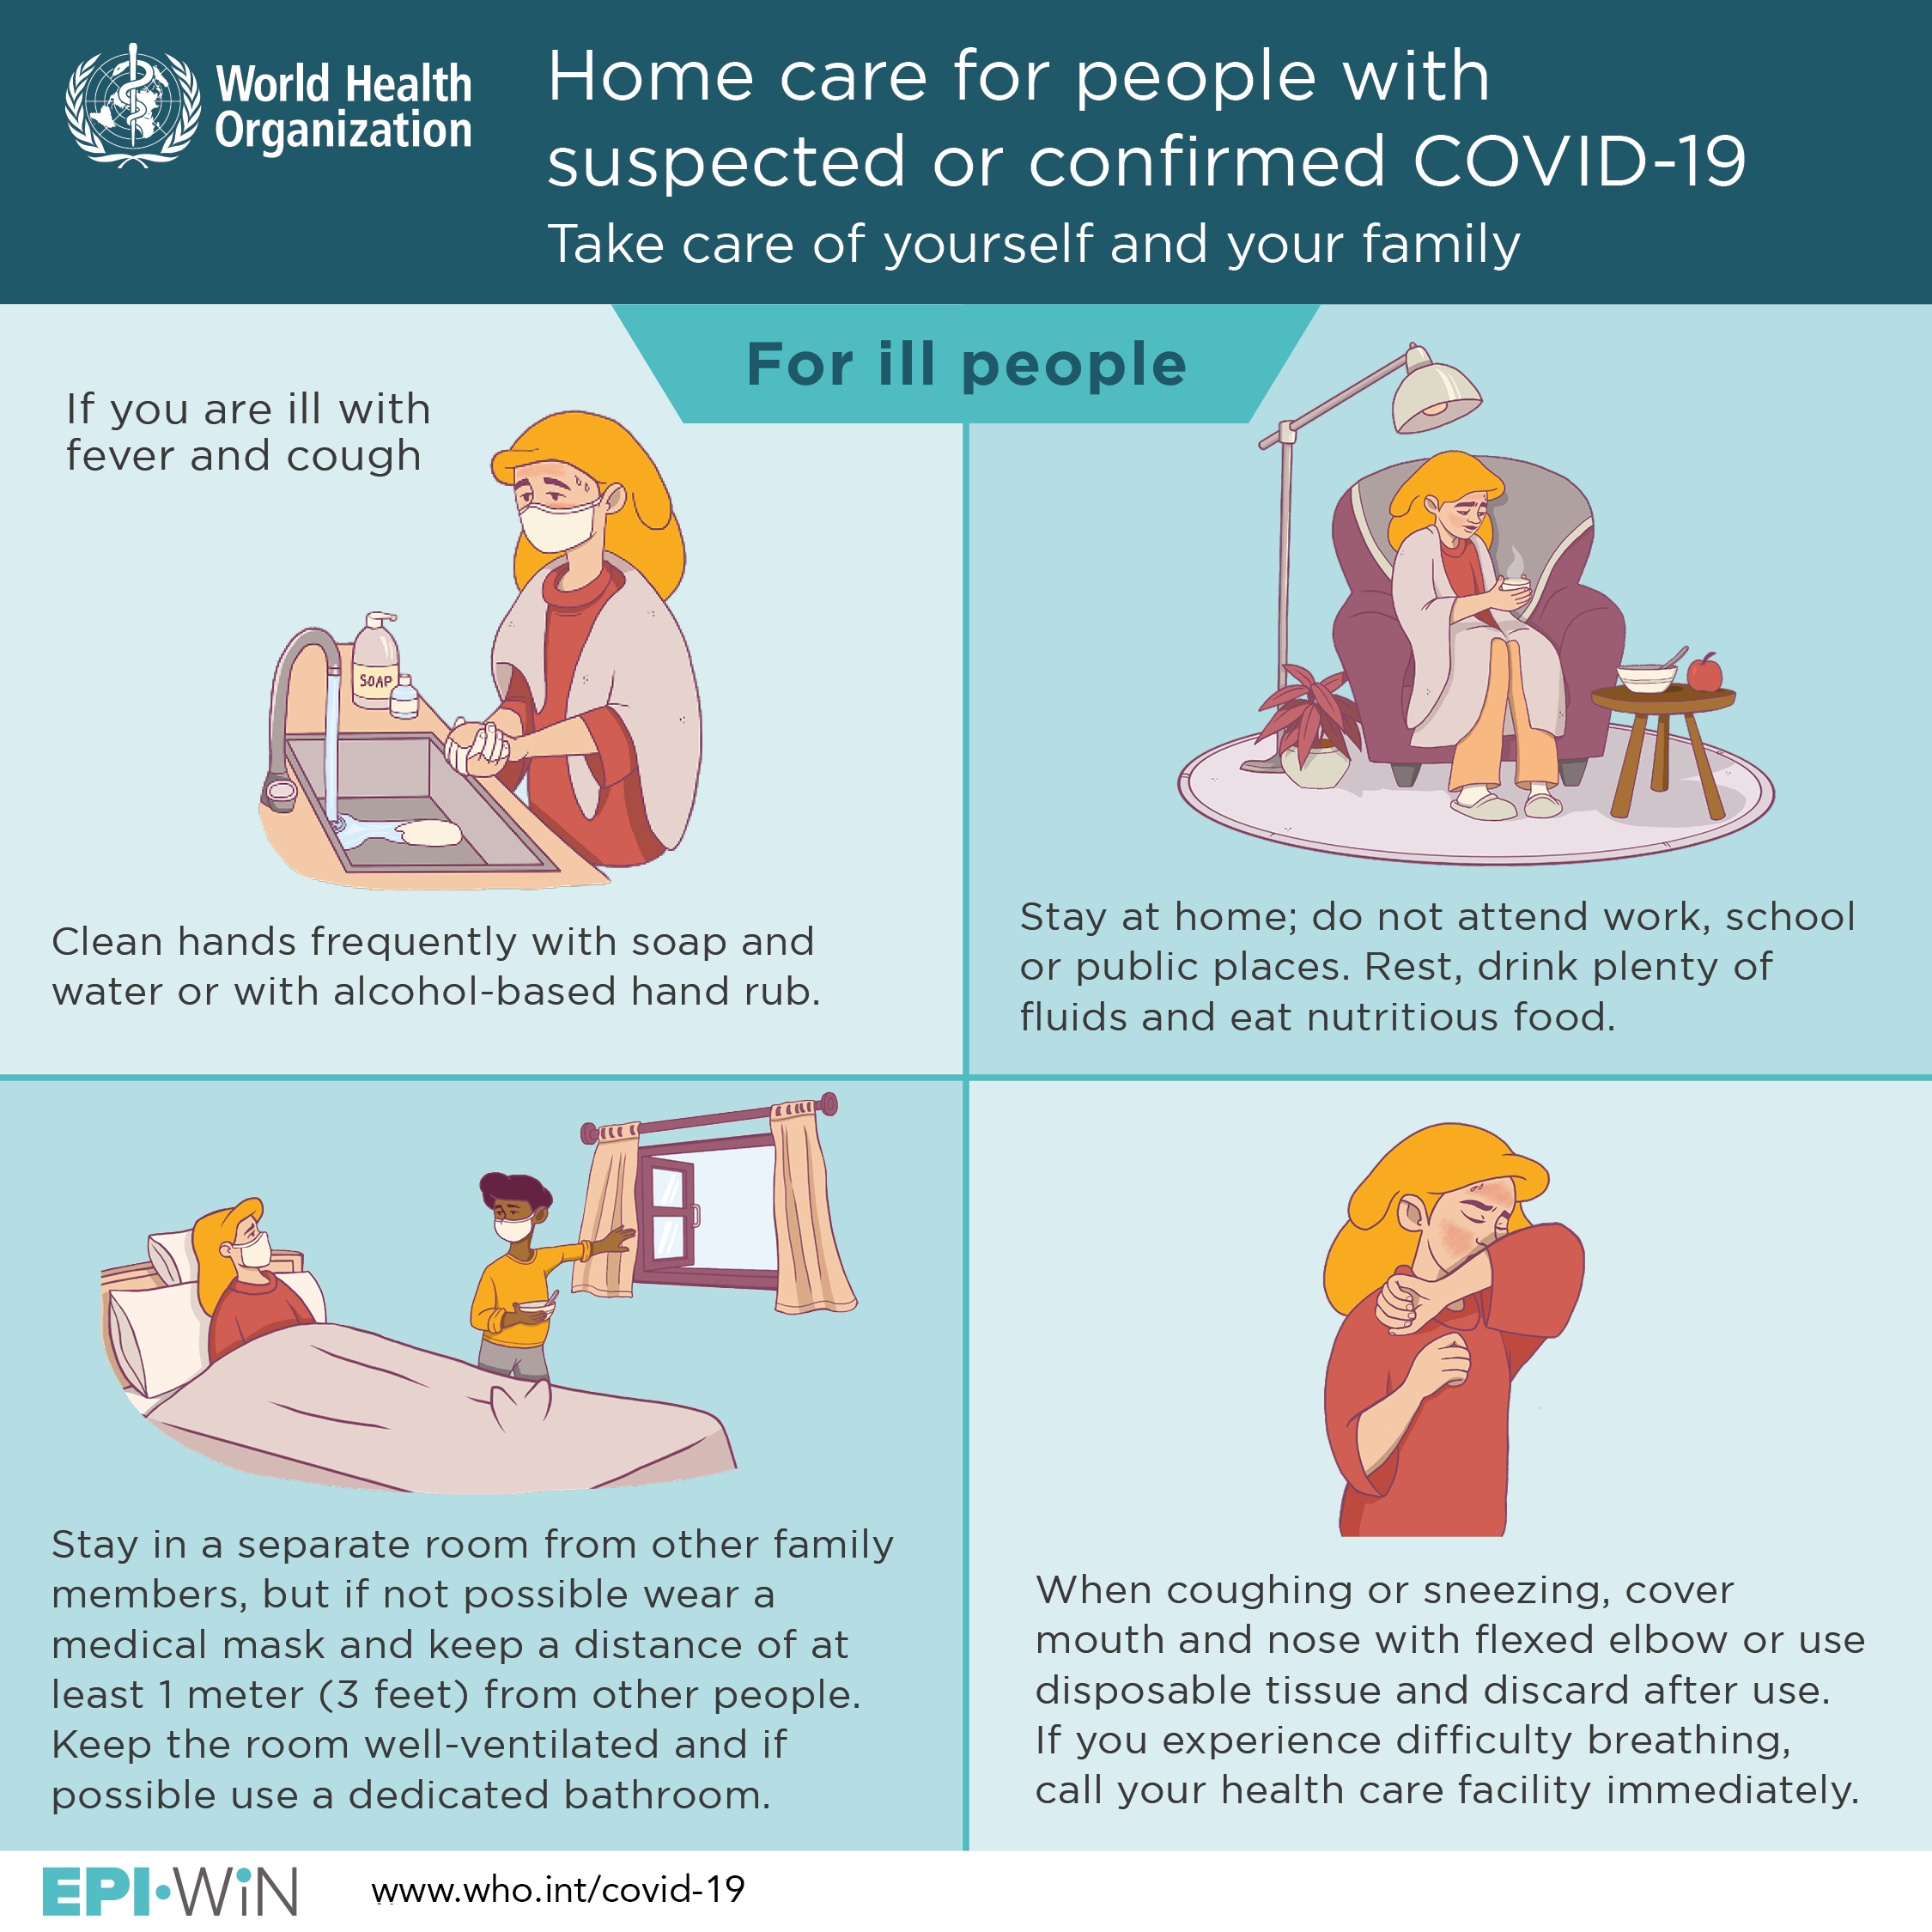 Covid19 Home Care Ill People Clean Frequently Drink Plenty Of Fluids Eat Nutritiously Stay Home In Separate Room If Not Possible Wear Keep Dista